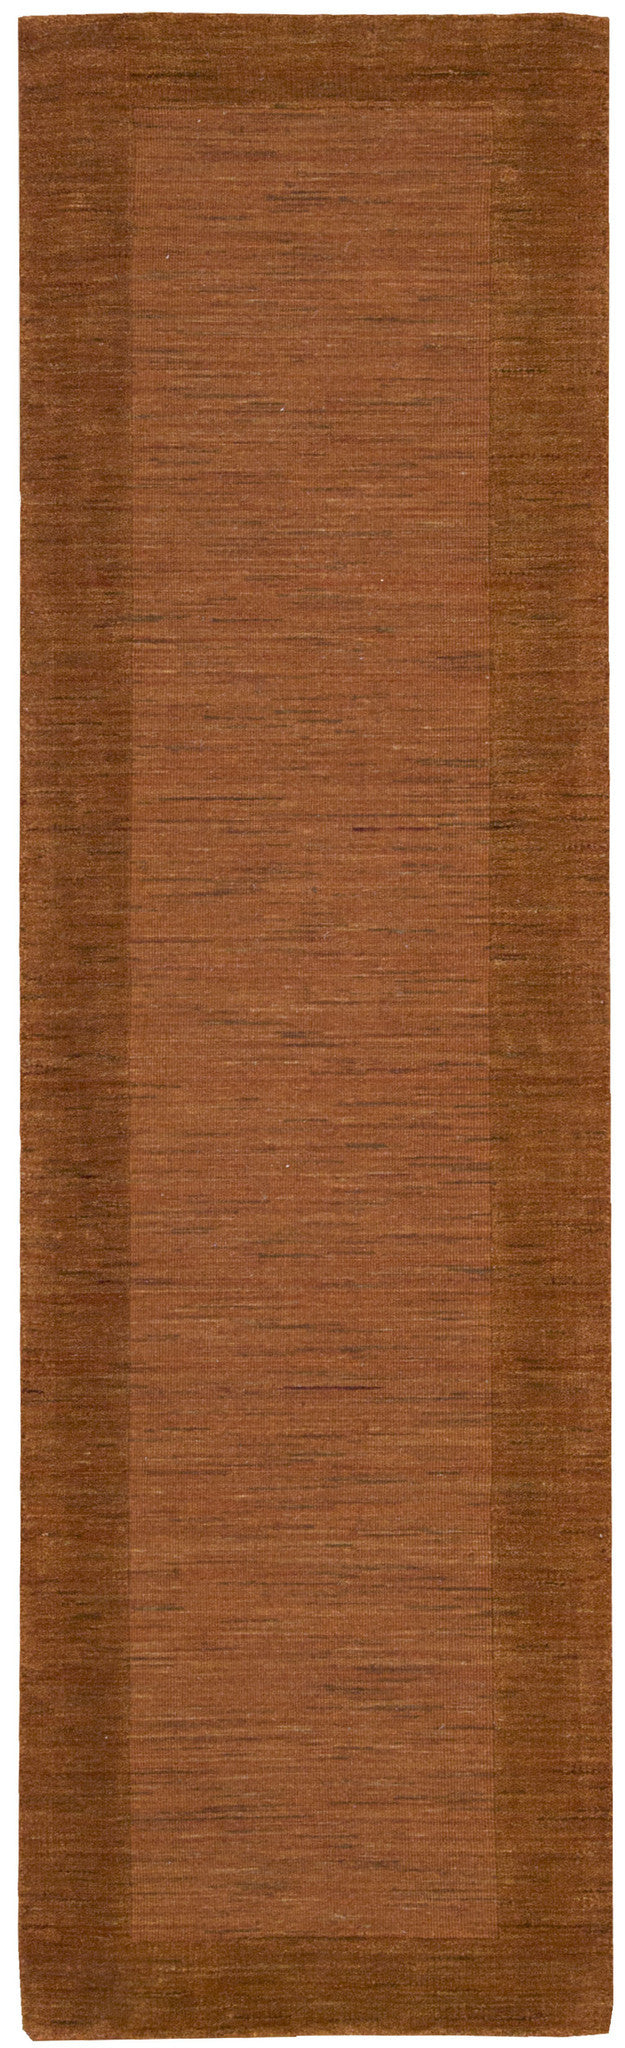 Barclay Butera Ripple Barn Area Rug By Nourison RIP01 BARN (Runner) | BOGO USA